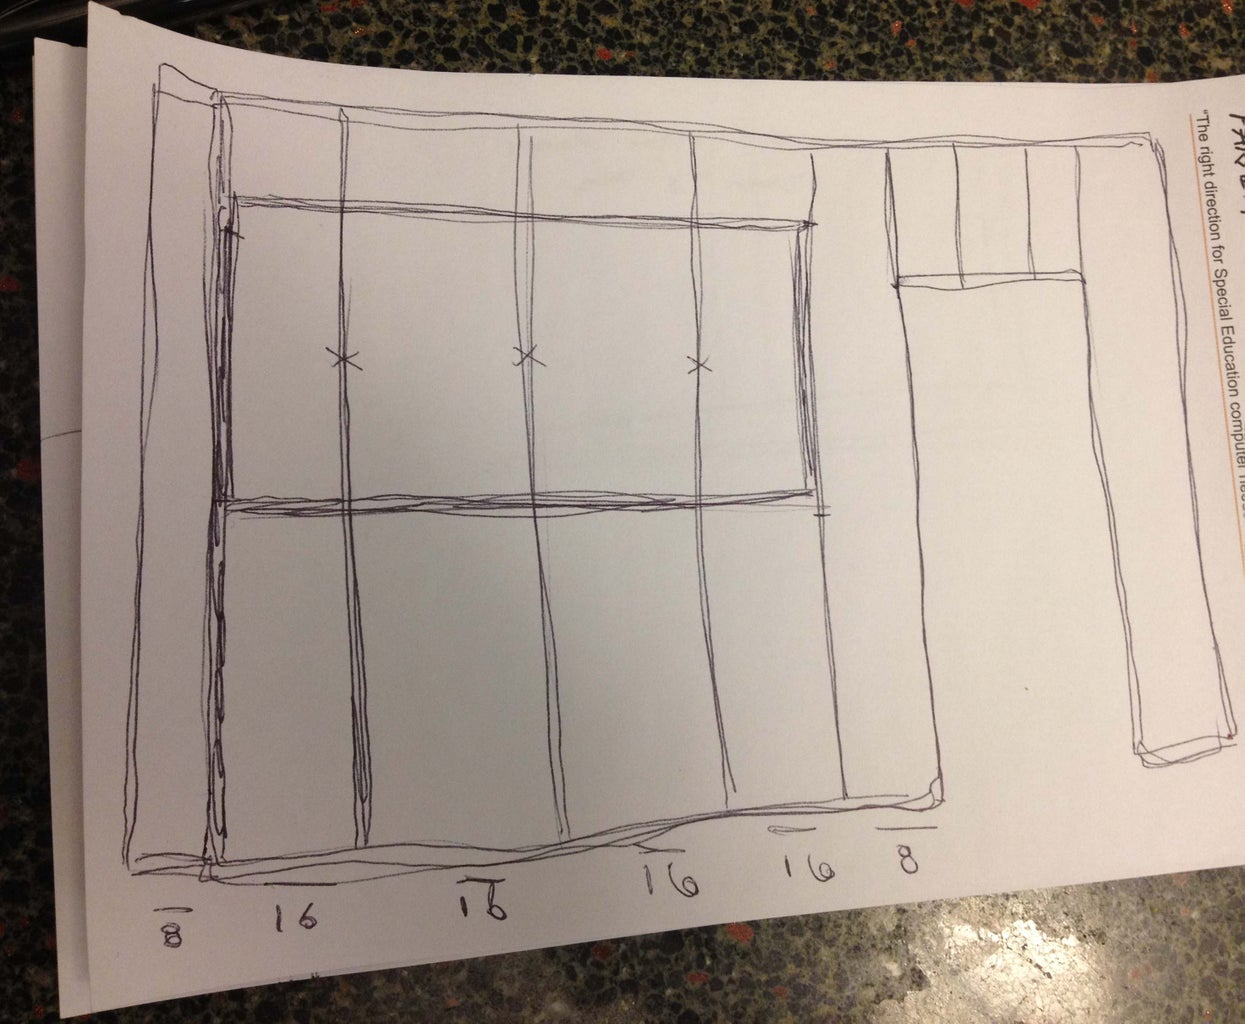 Verifying Your Plans and Cutting Drywall